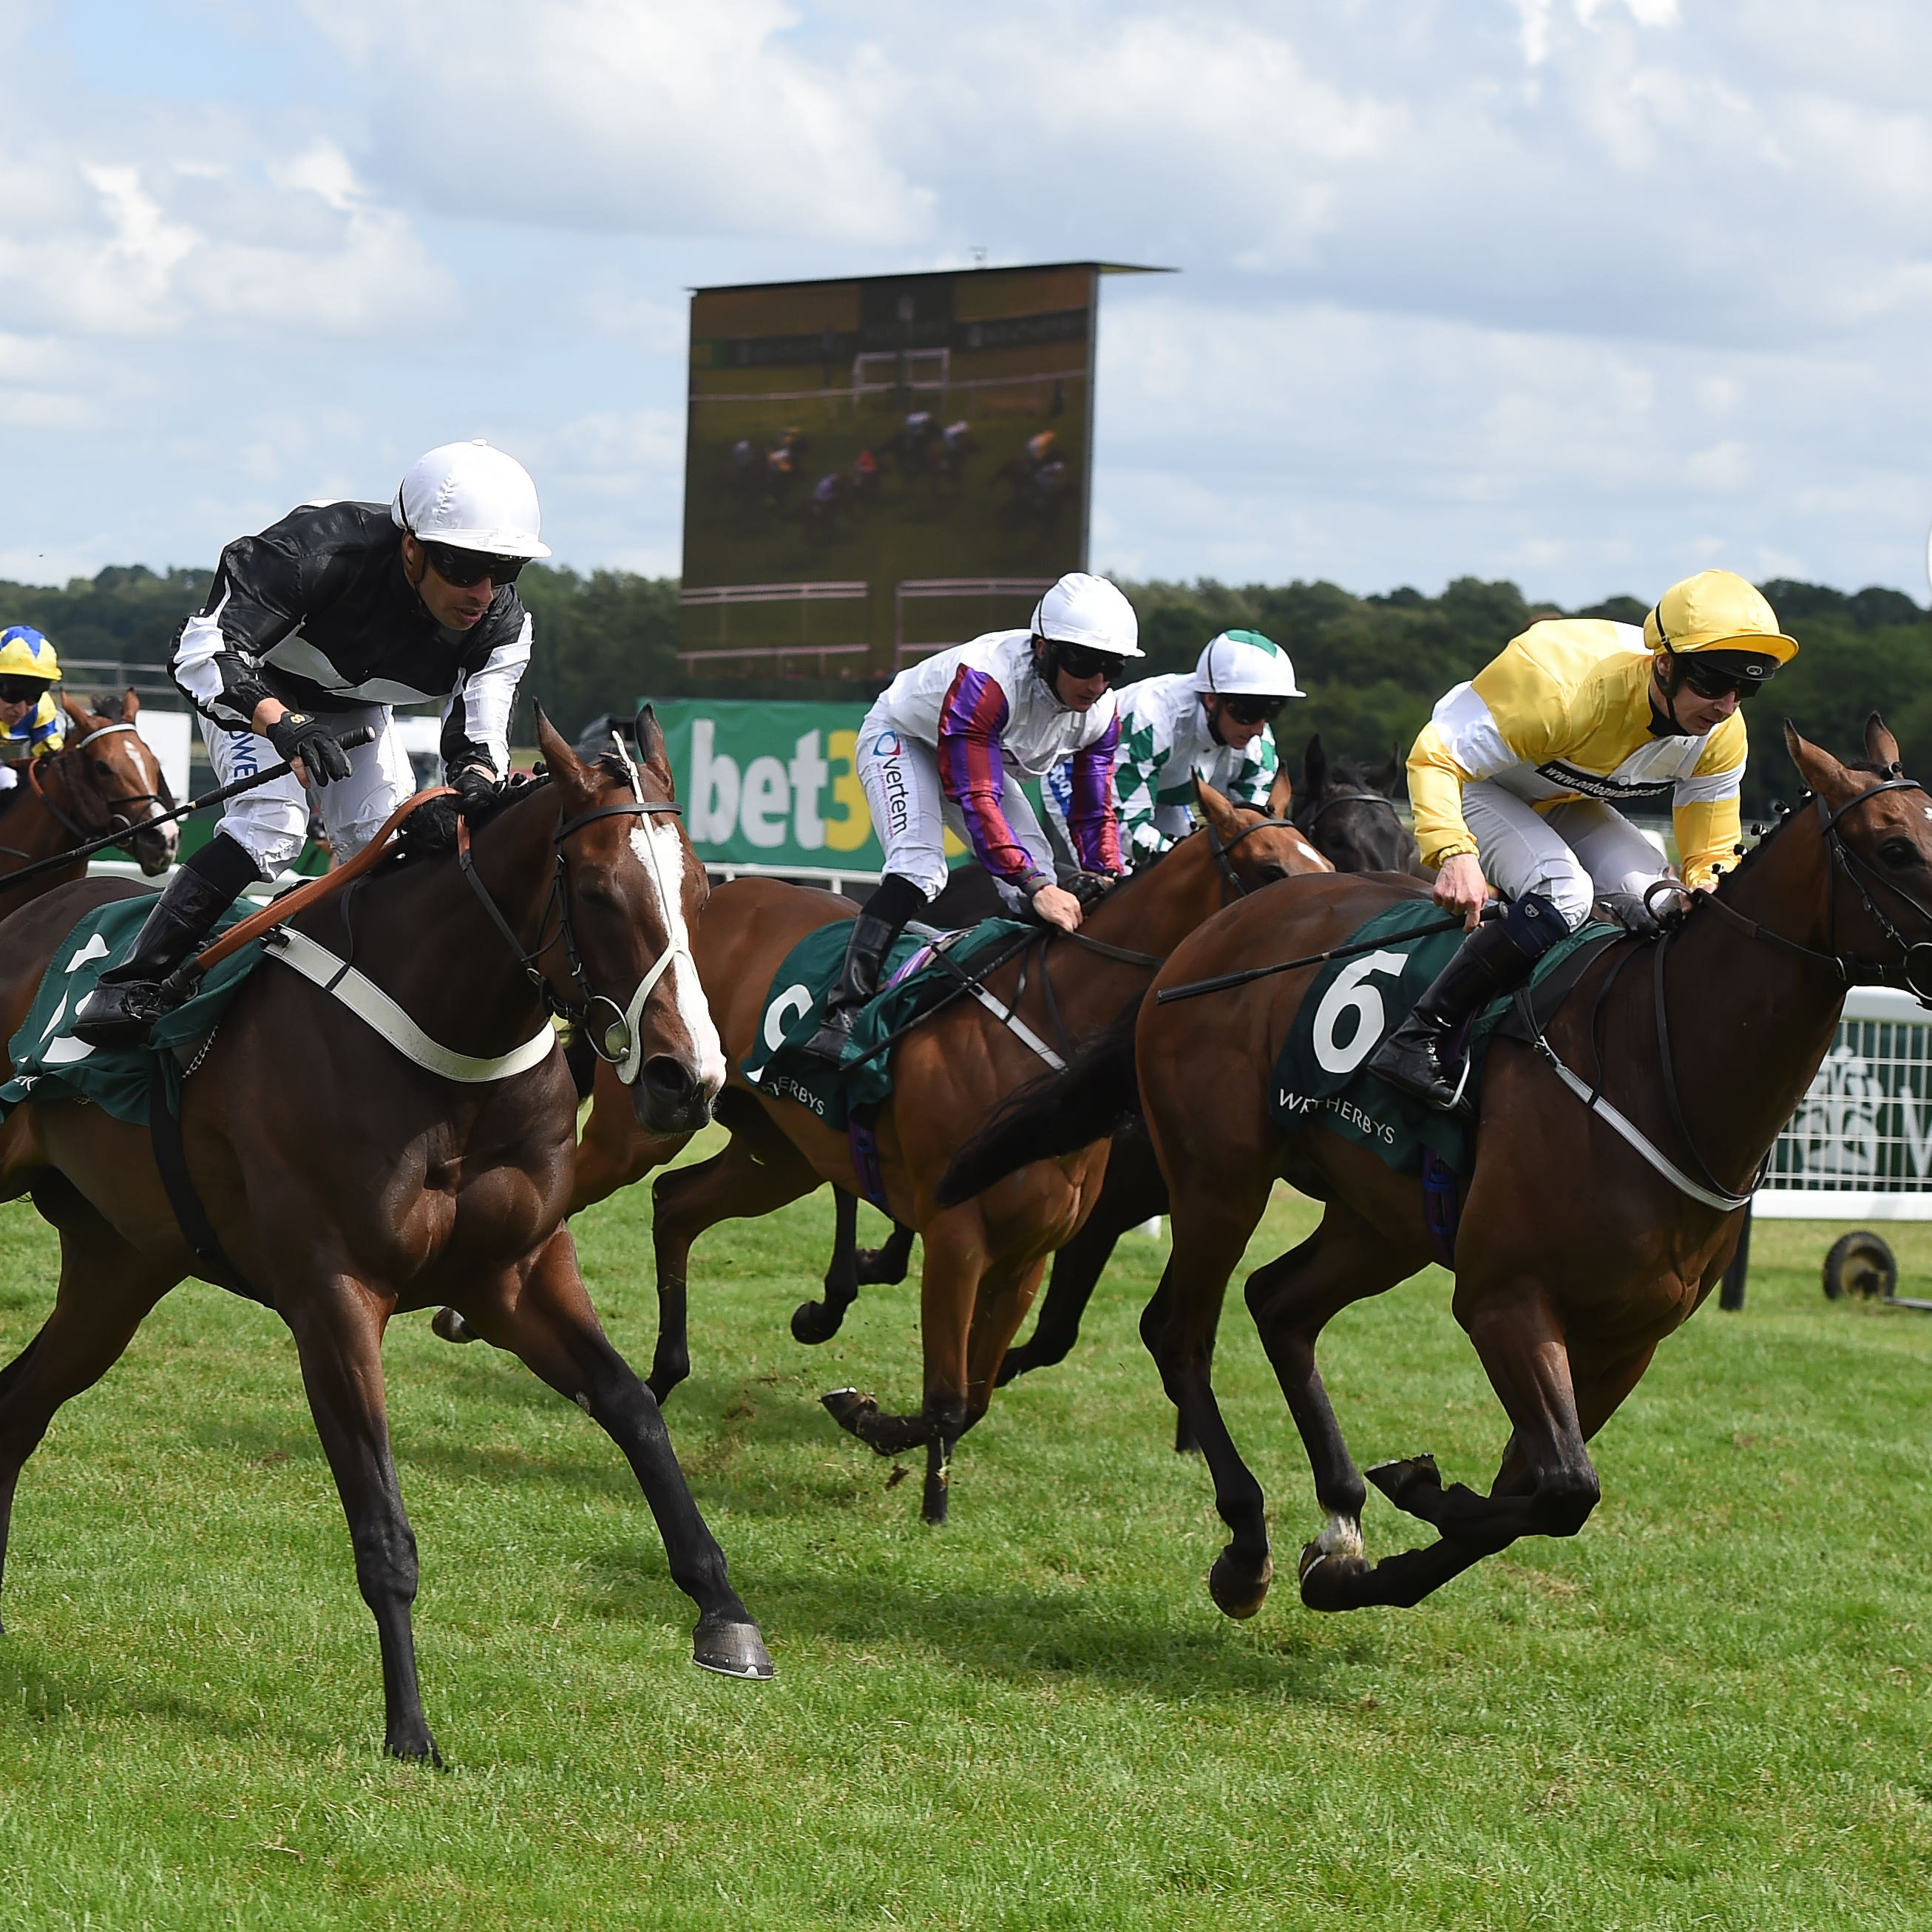 Silvestre de Sousa (near side) gets up close home to claim the Weatherbys Super Sprint at Newbury